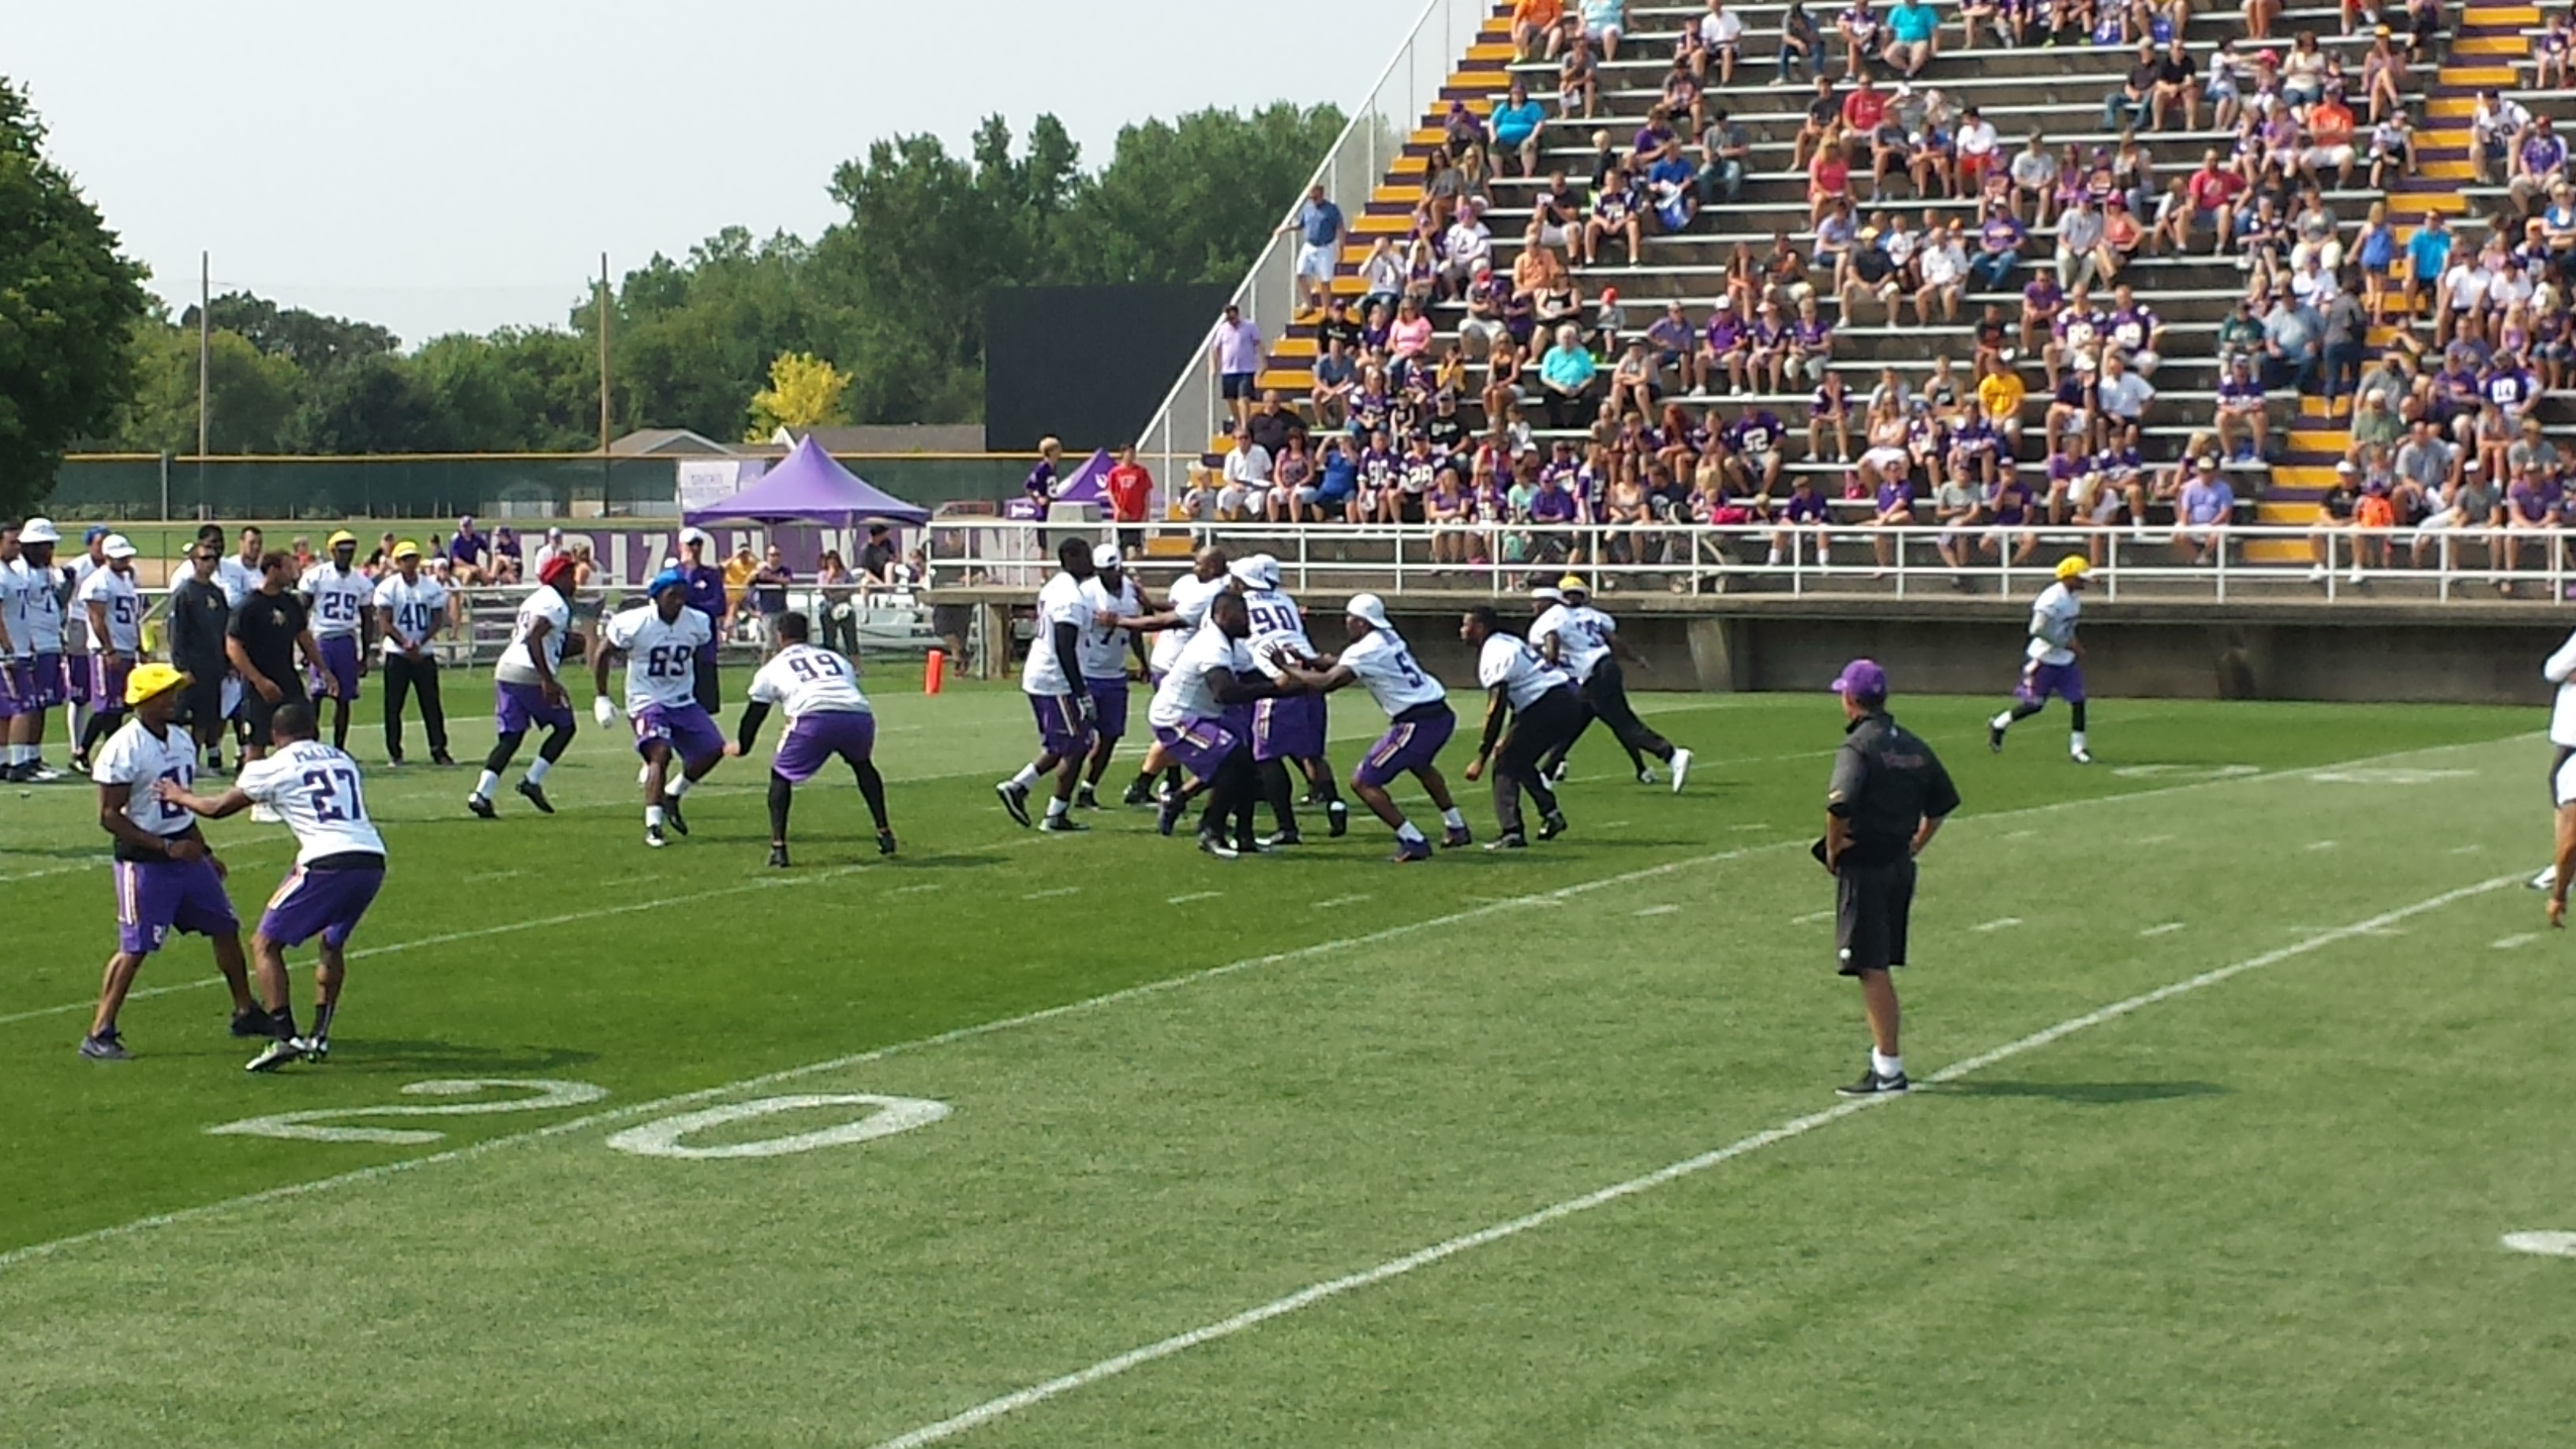 Coach Zimmer doing his thang.